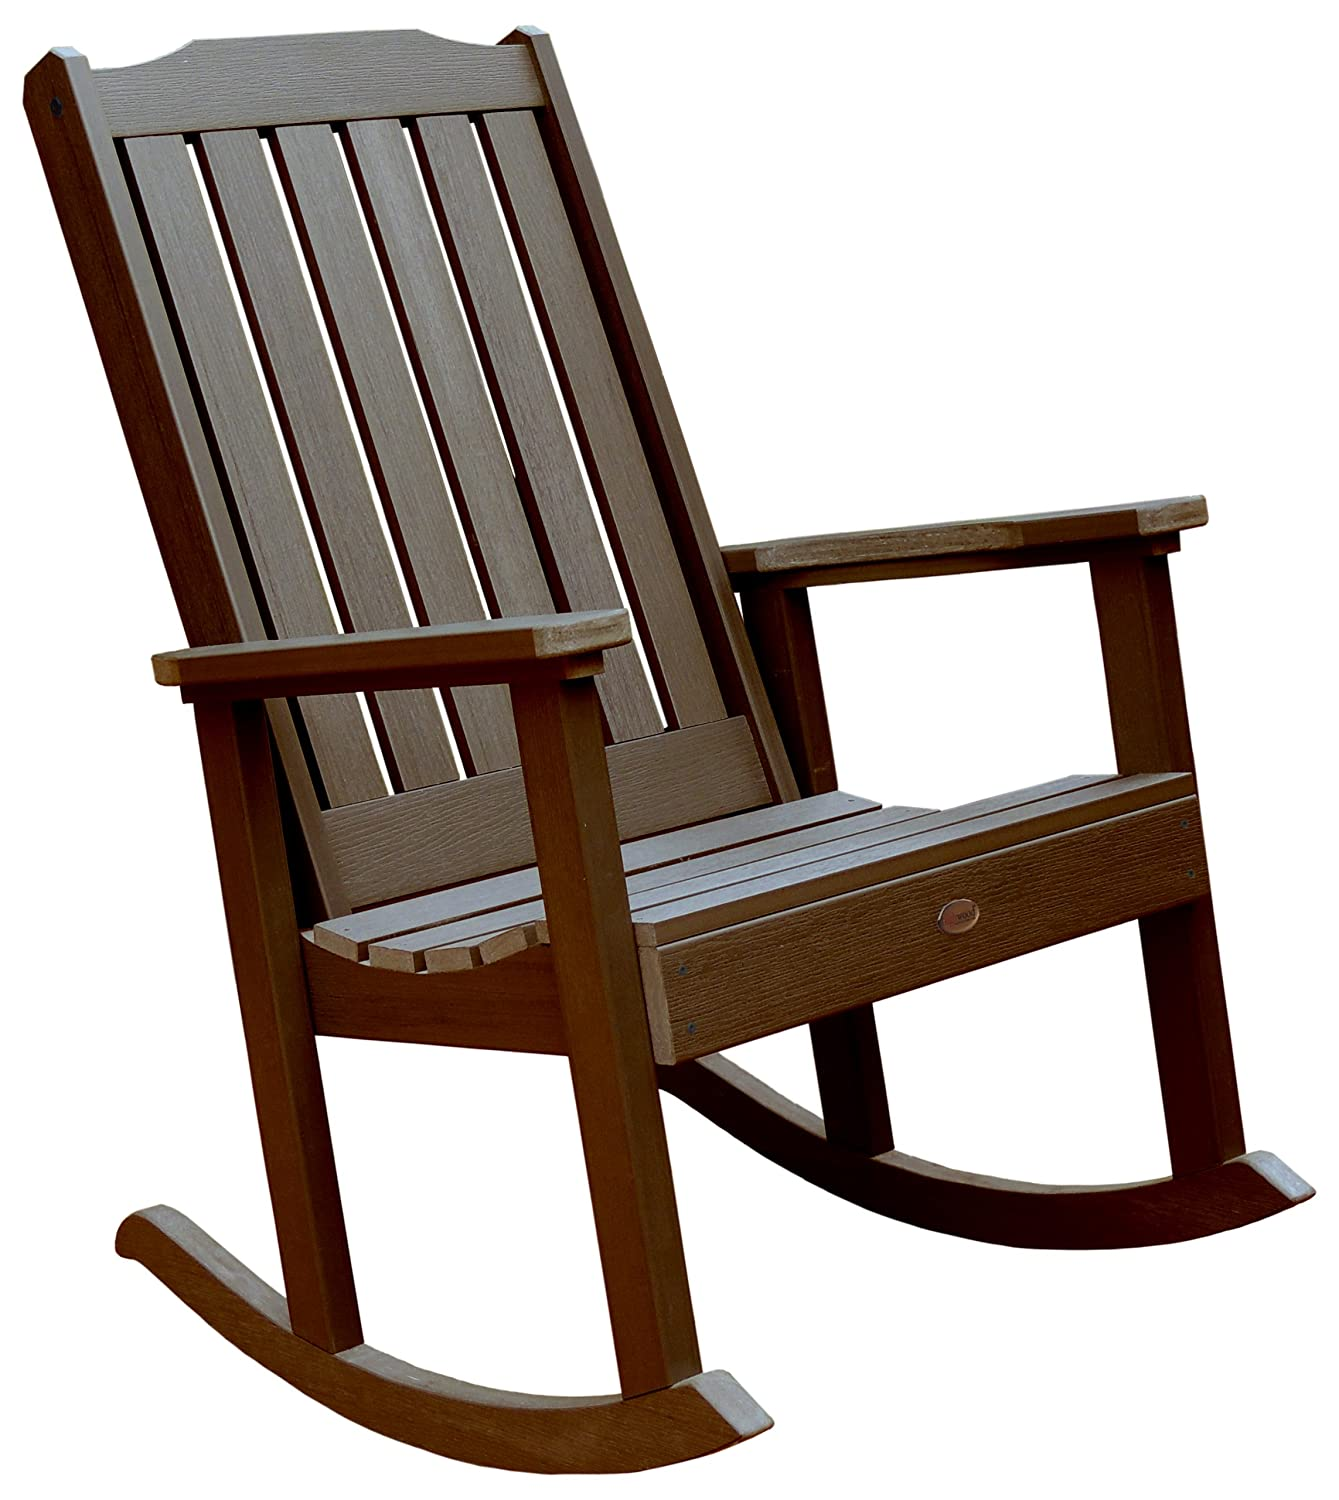 By Rocking Chair Outdoor Rocking Chairs For Heavy People For Big And Heavy